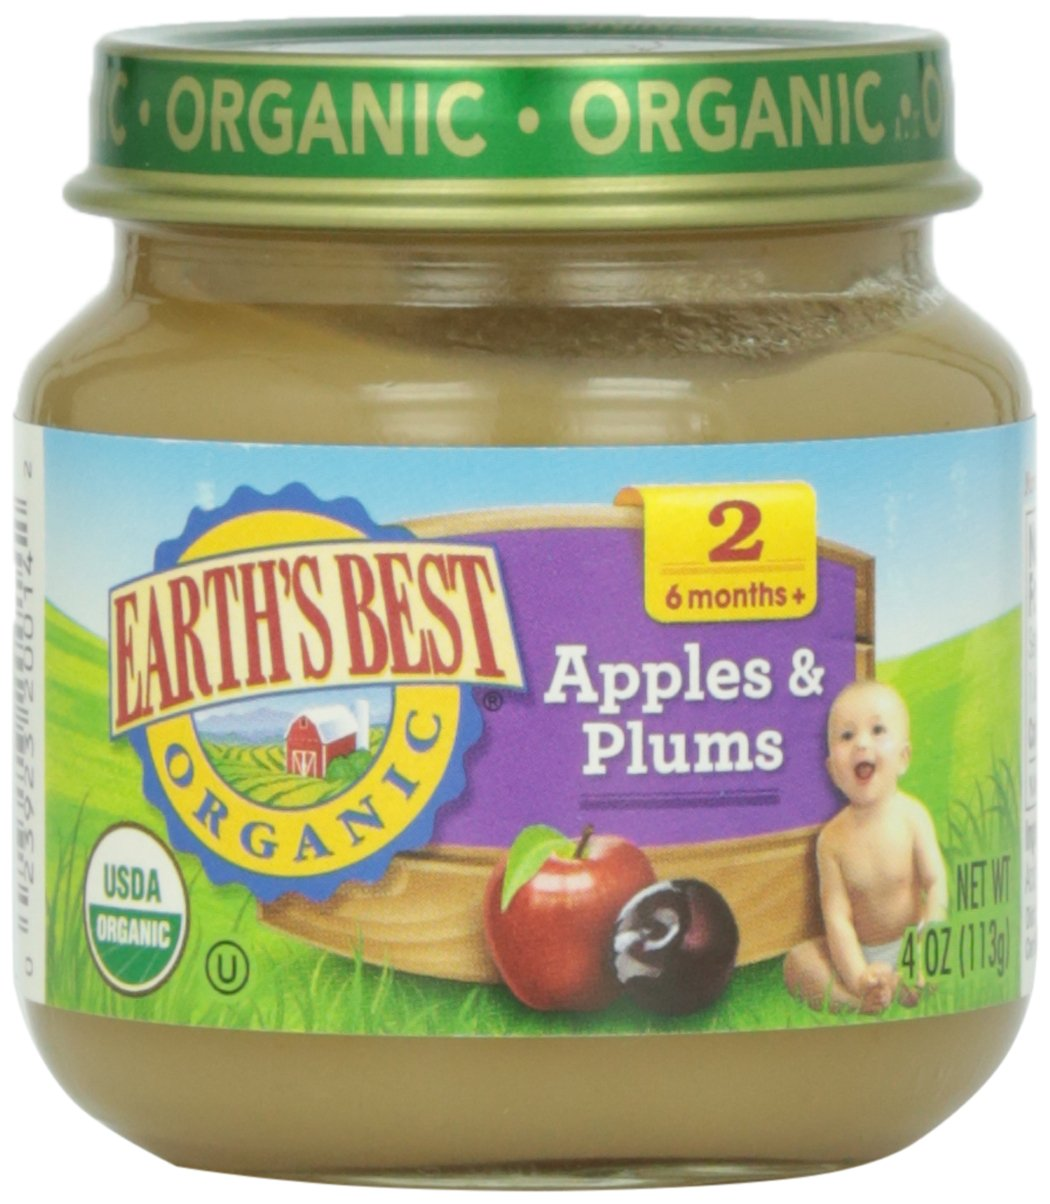 Earth's Best Organic Stage 2 Baby Food, Apples and Plums, 4 oz. Jar